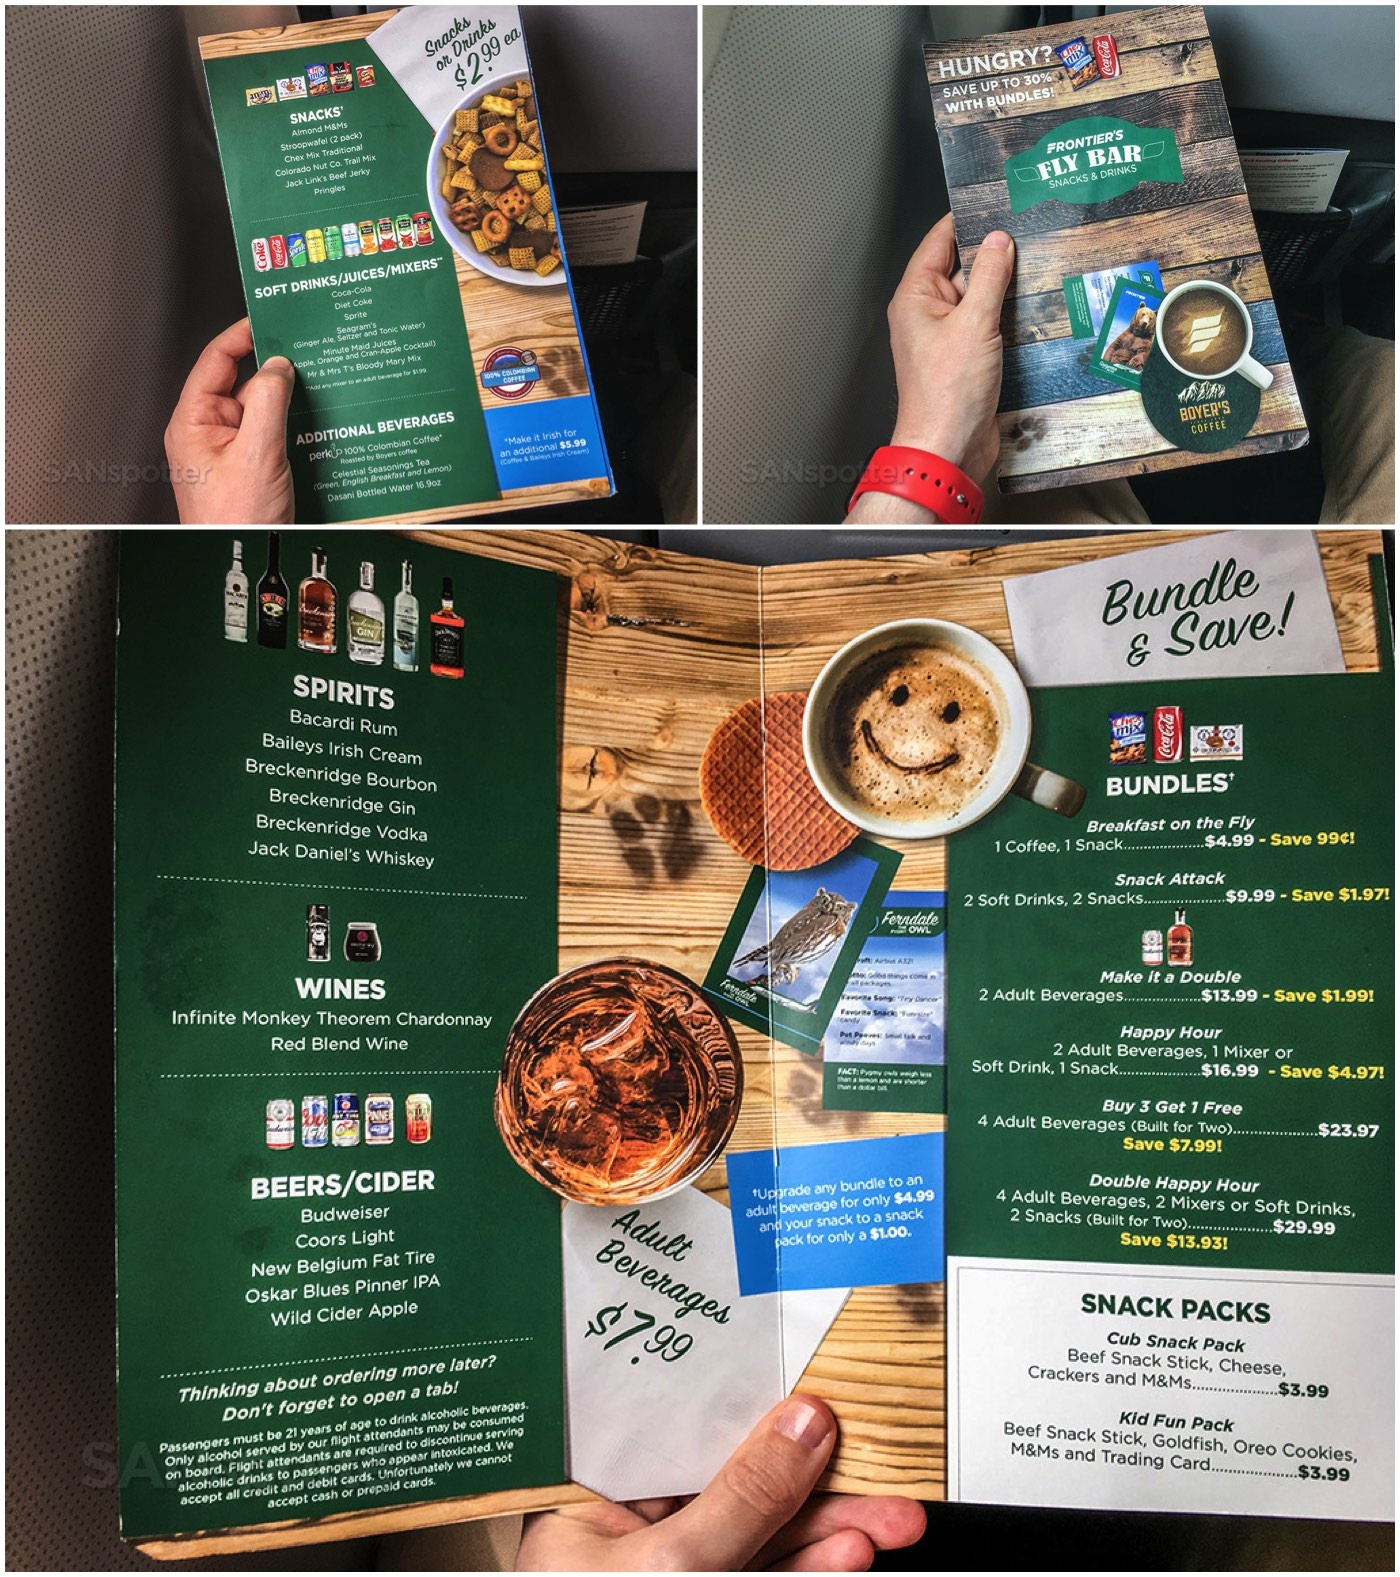 Frontier Airlines food for purchase menu